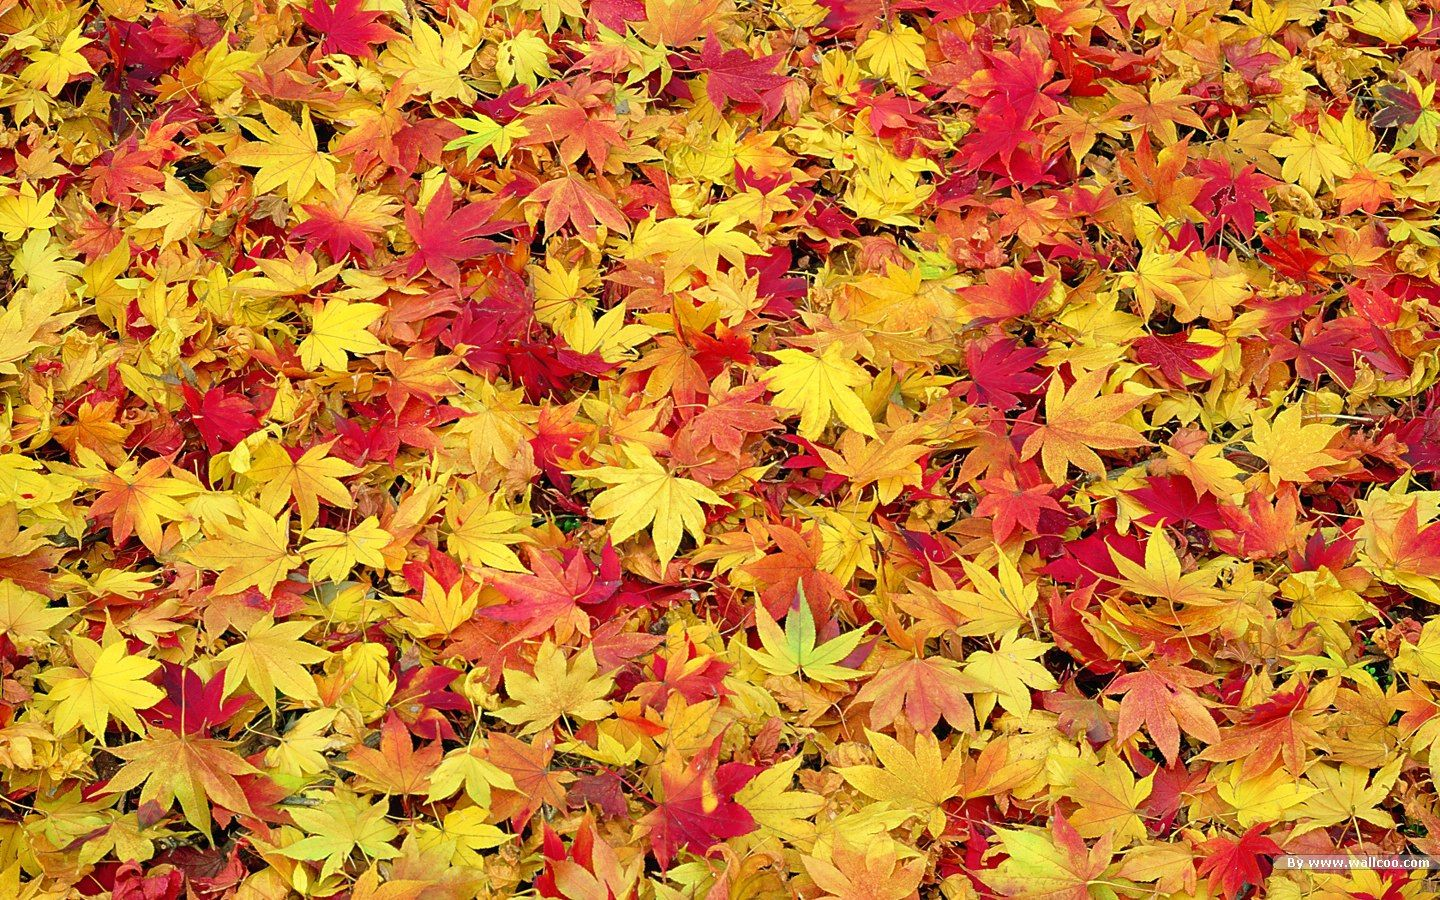 Collection of Fall Foliage Desktop Wallpaper on HDWallpapers